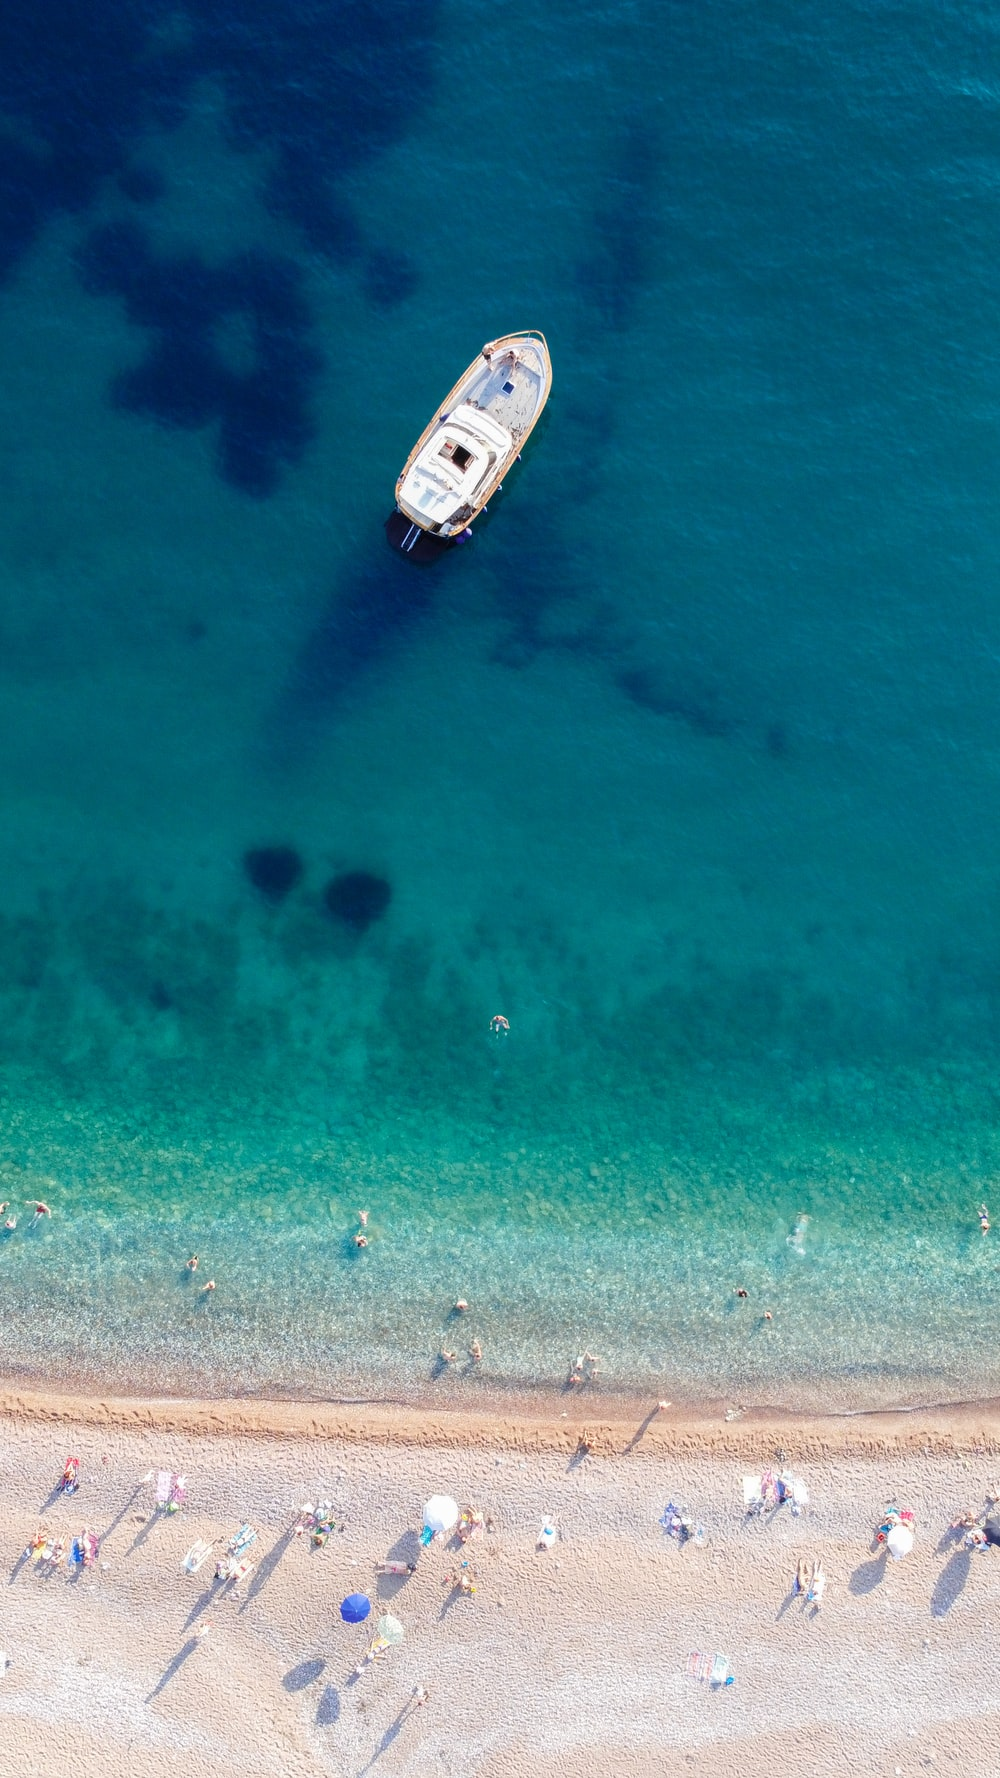 white and black boat on blue sea water during daytime